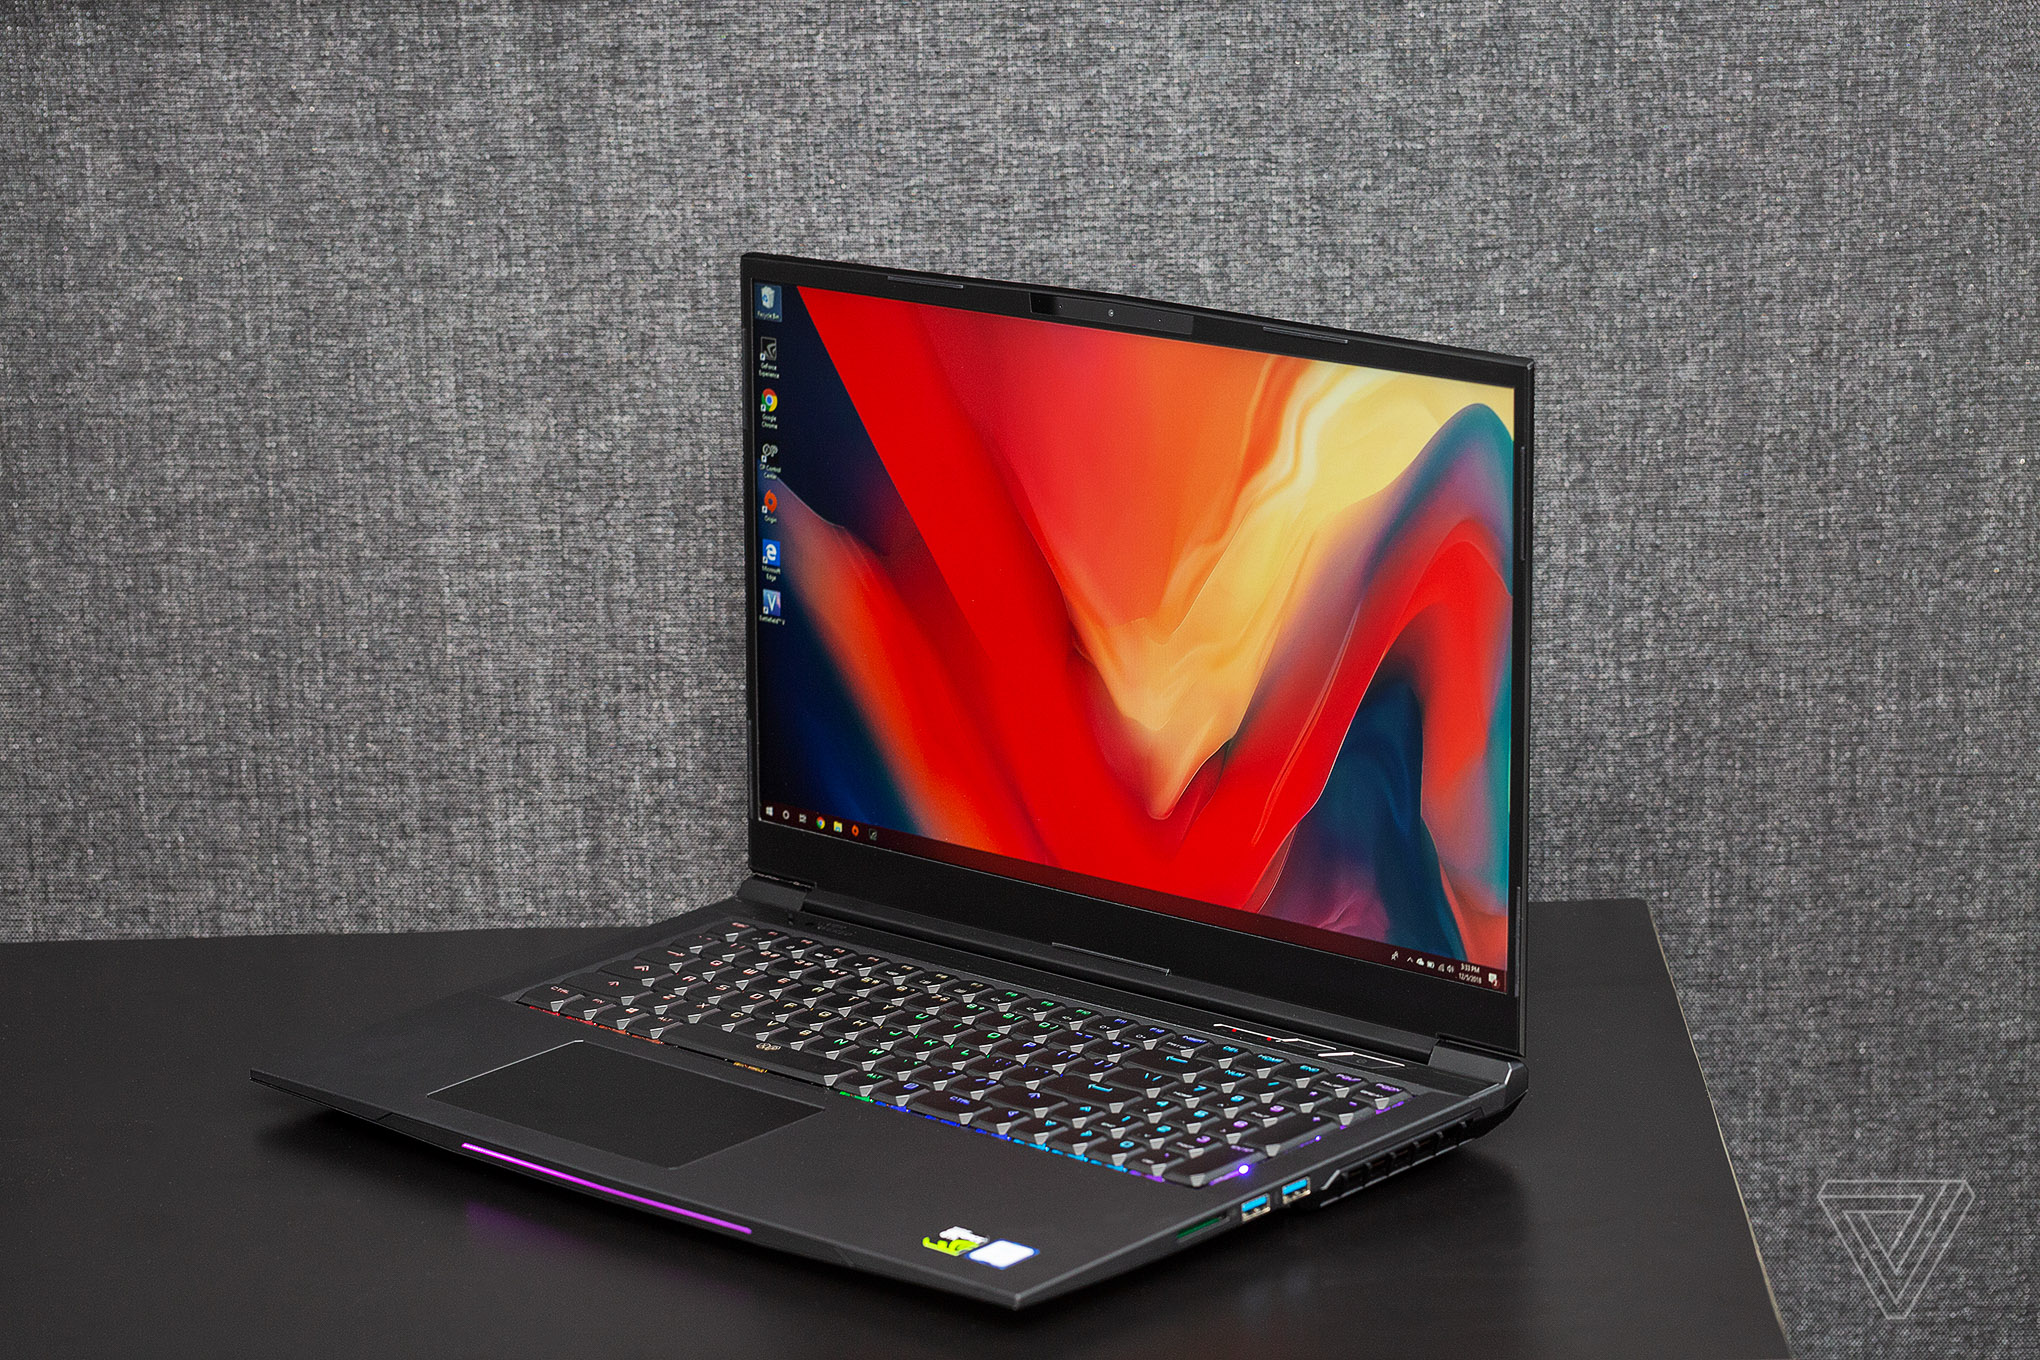 3d48f9b28a4 Walmart Overpowered 17+ laptop review: underwhelming - The Verge